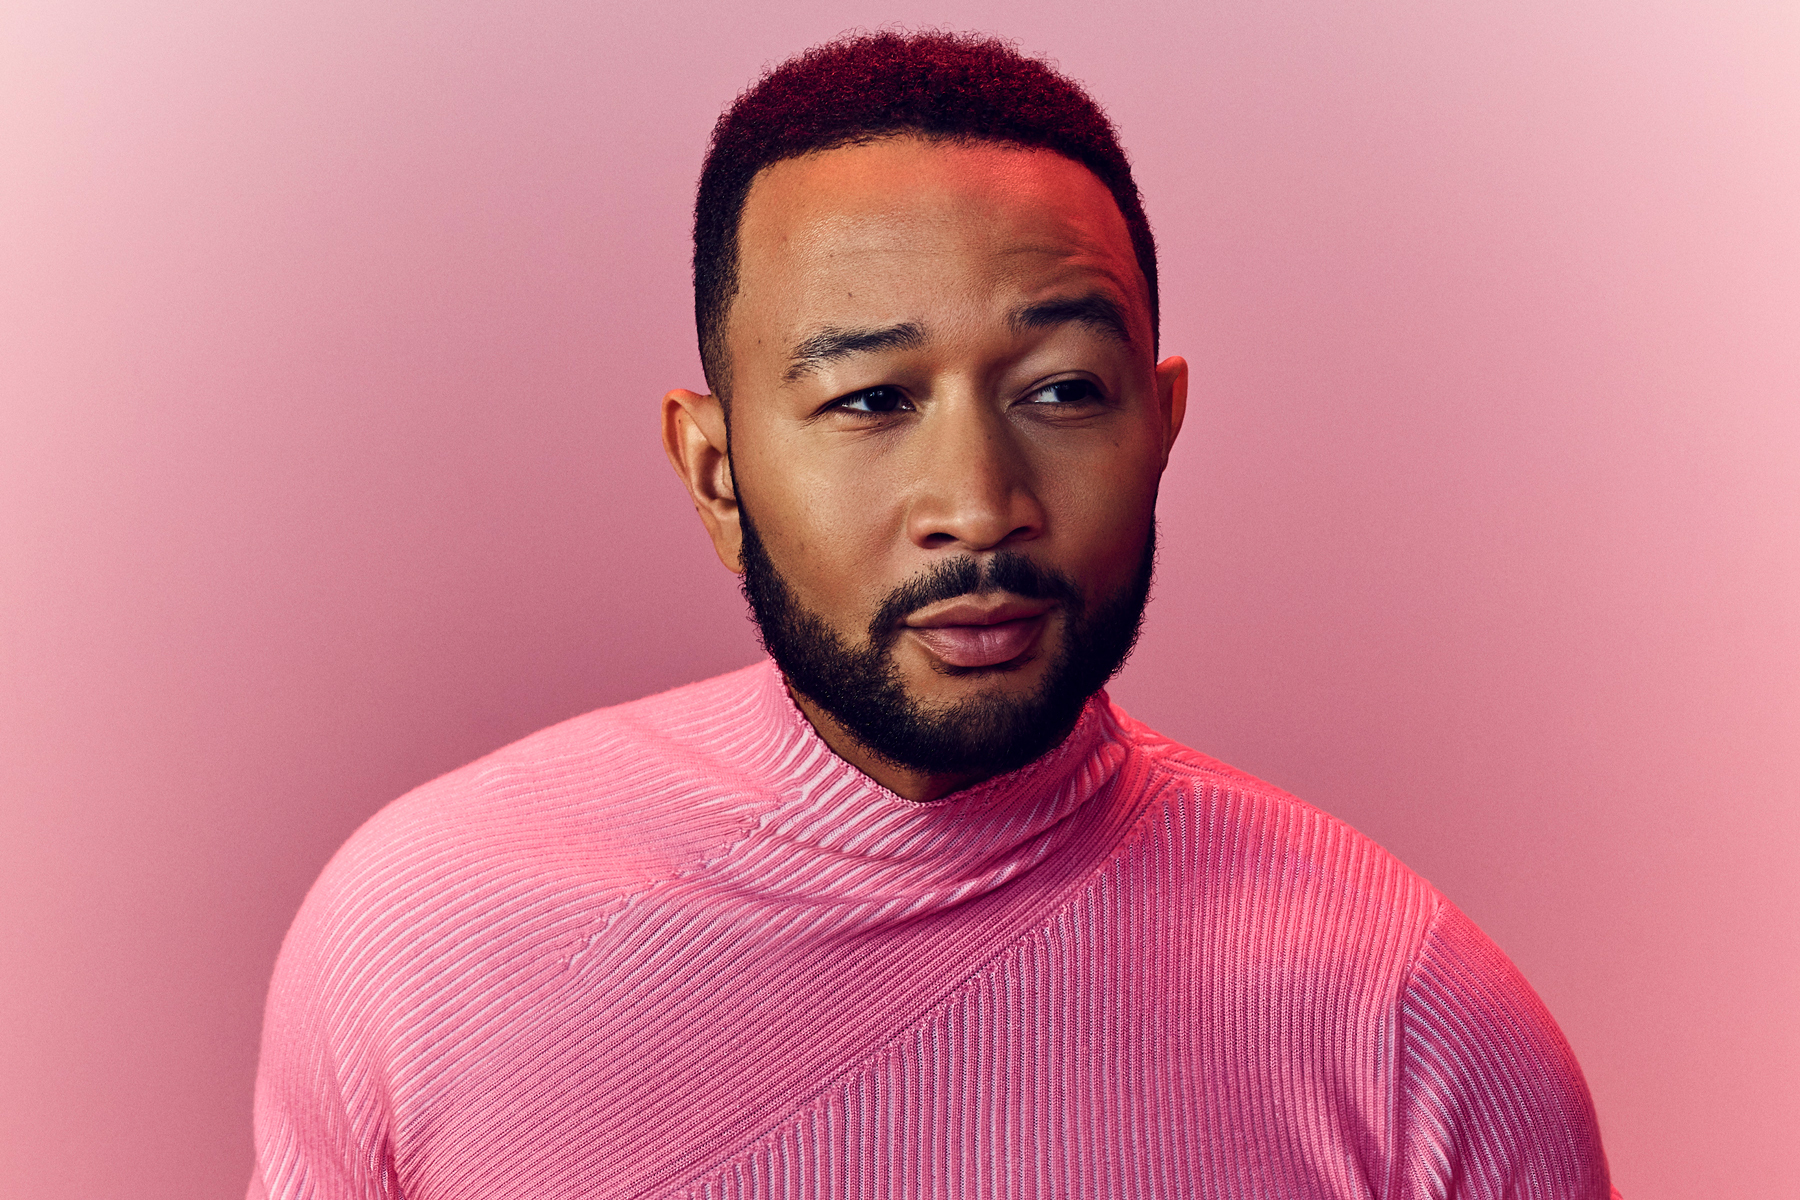 john-legend-drags-weak-donald-trump-after-watching-barack-obamas-dnc-speech-hes-a-sorry-excuse-for-a-president